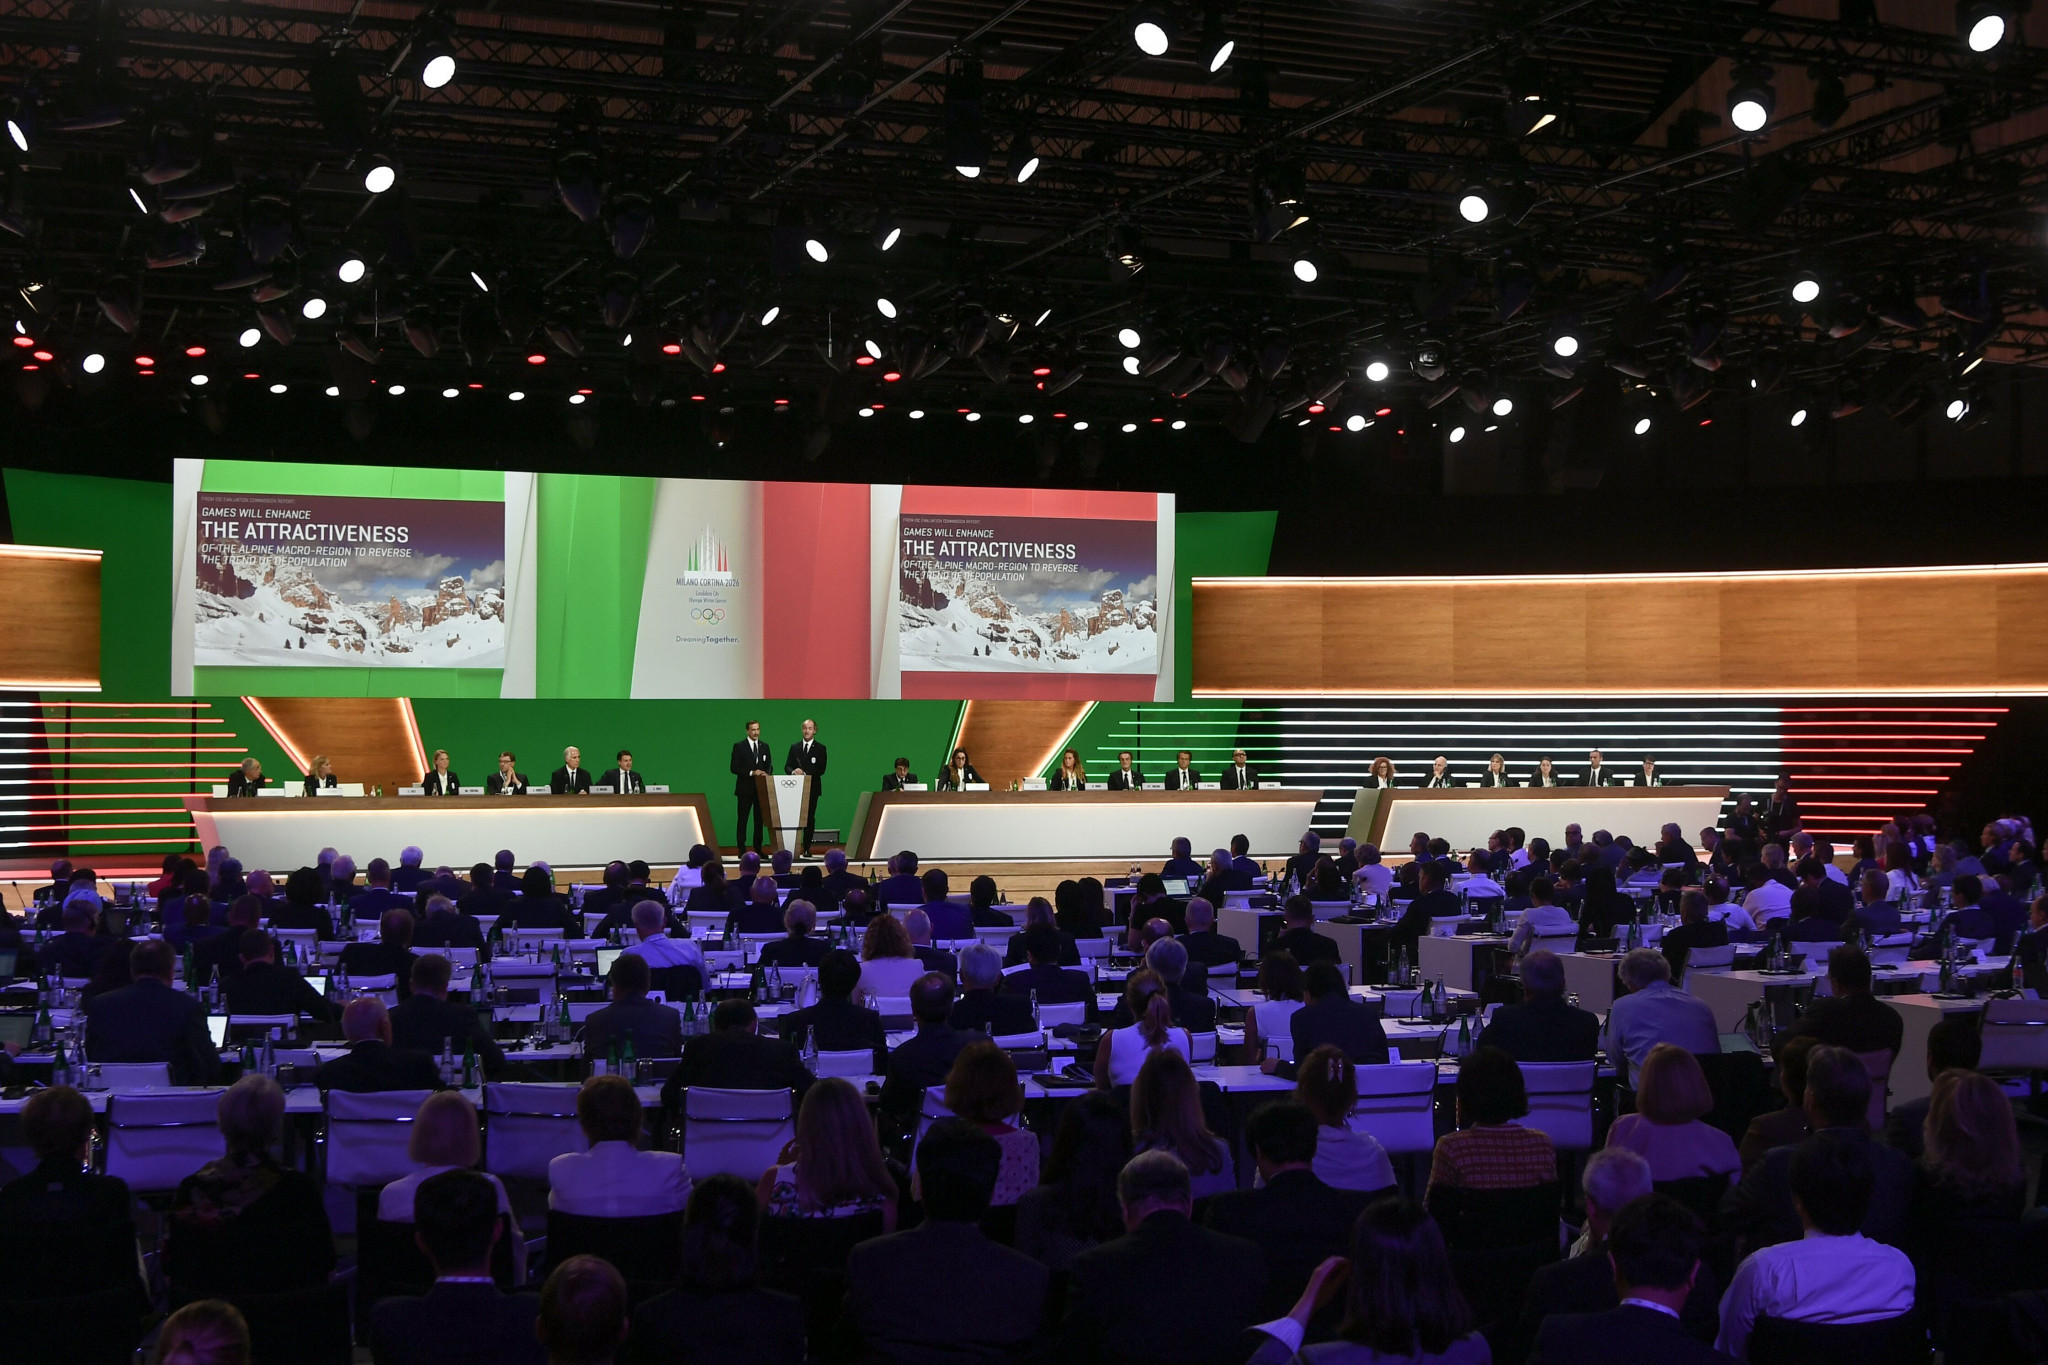 insidethegames is reporting LIVE from the 134th IOC Session in Lausanne